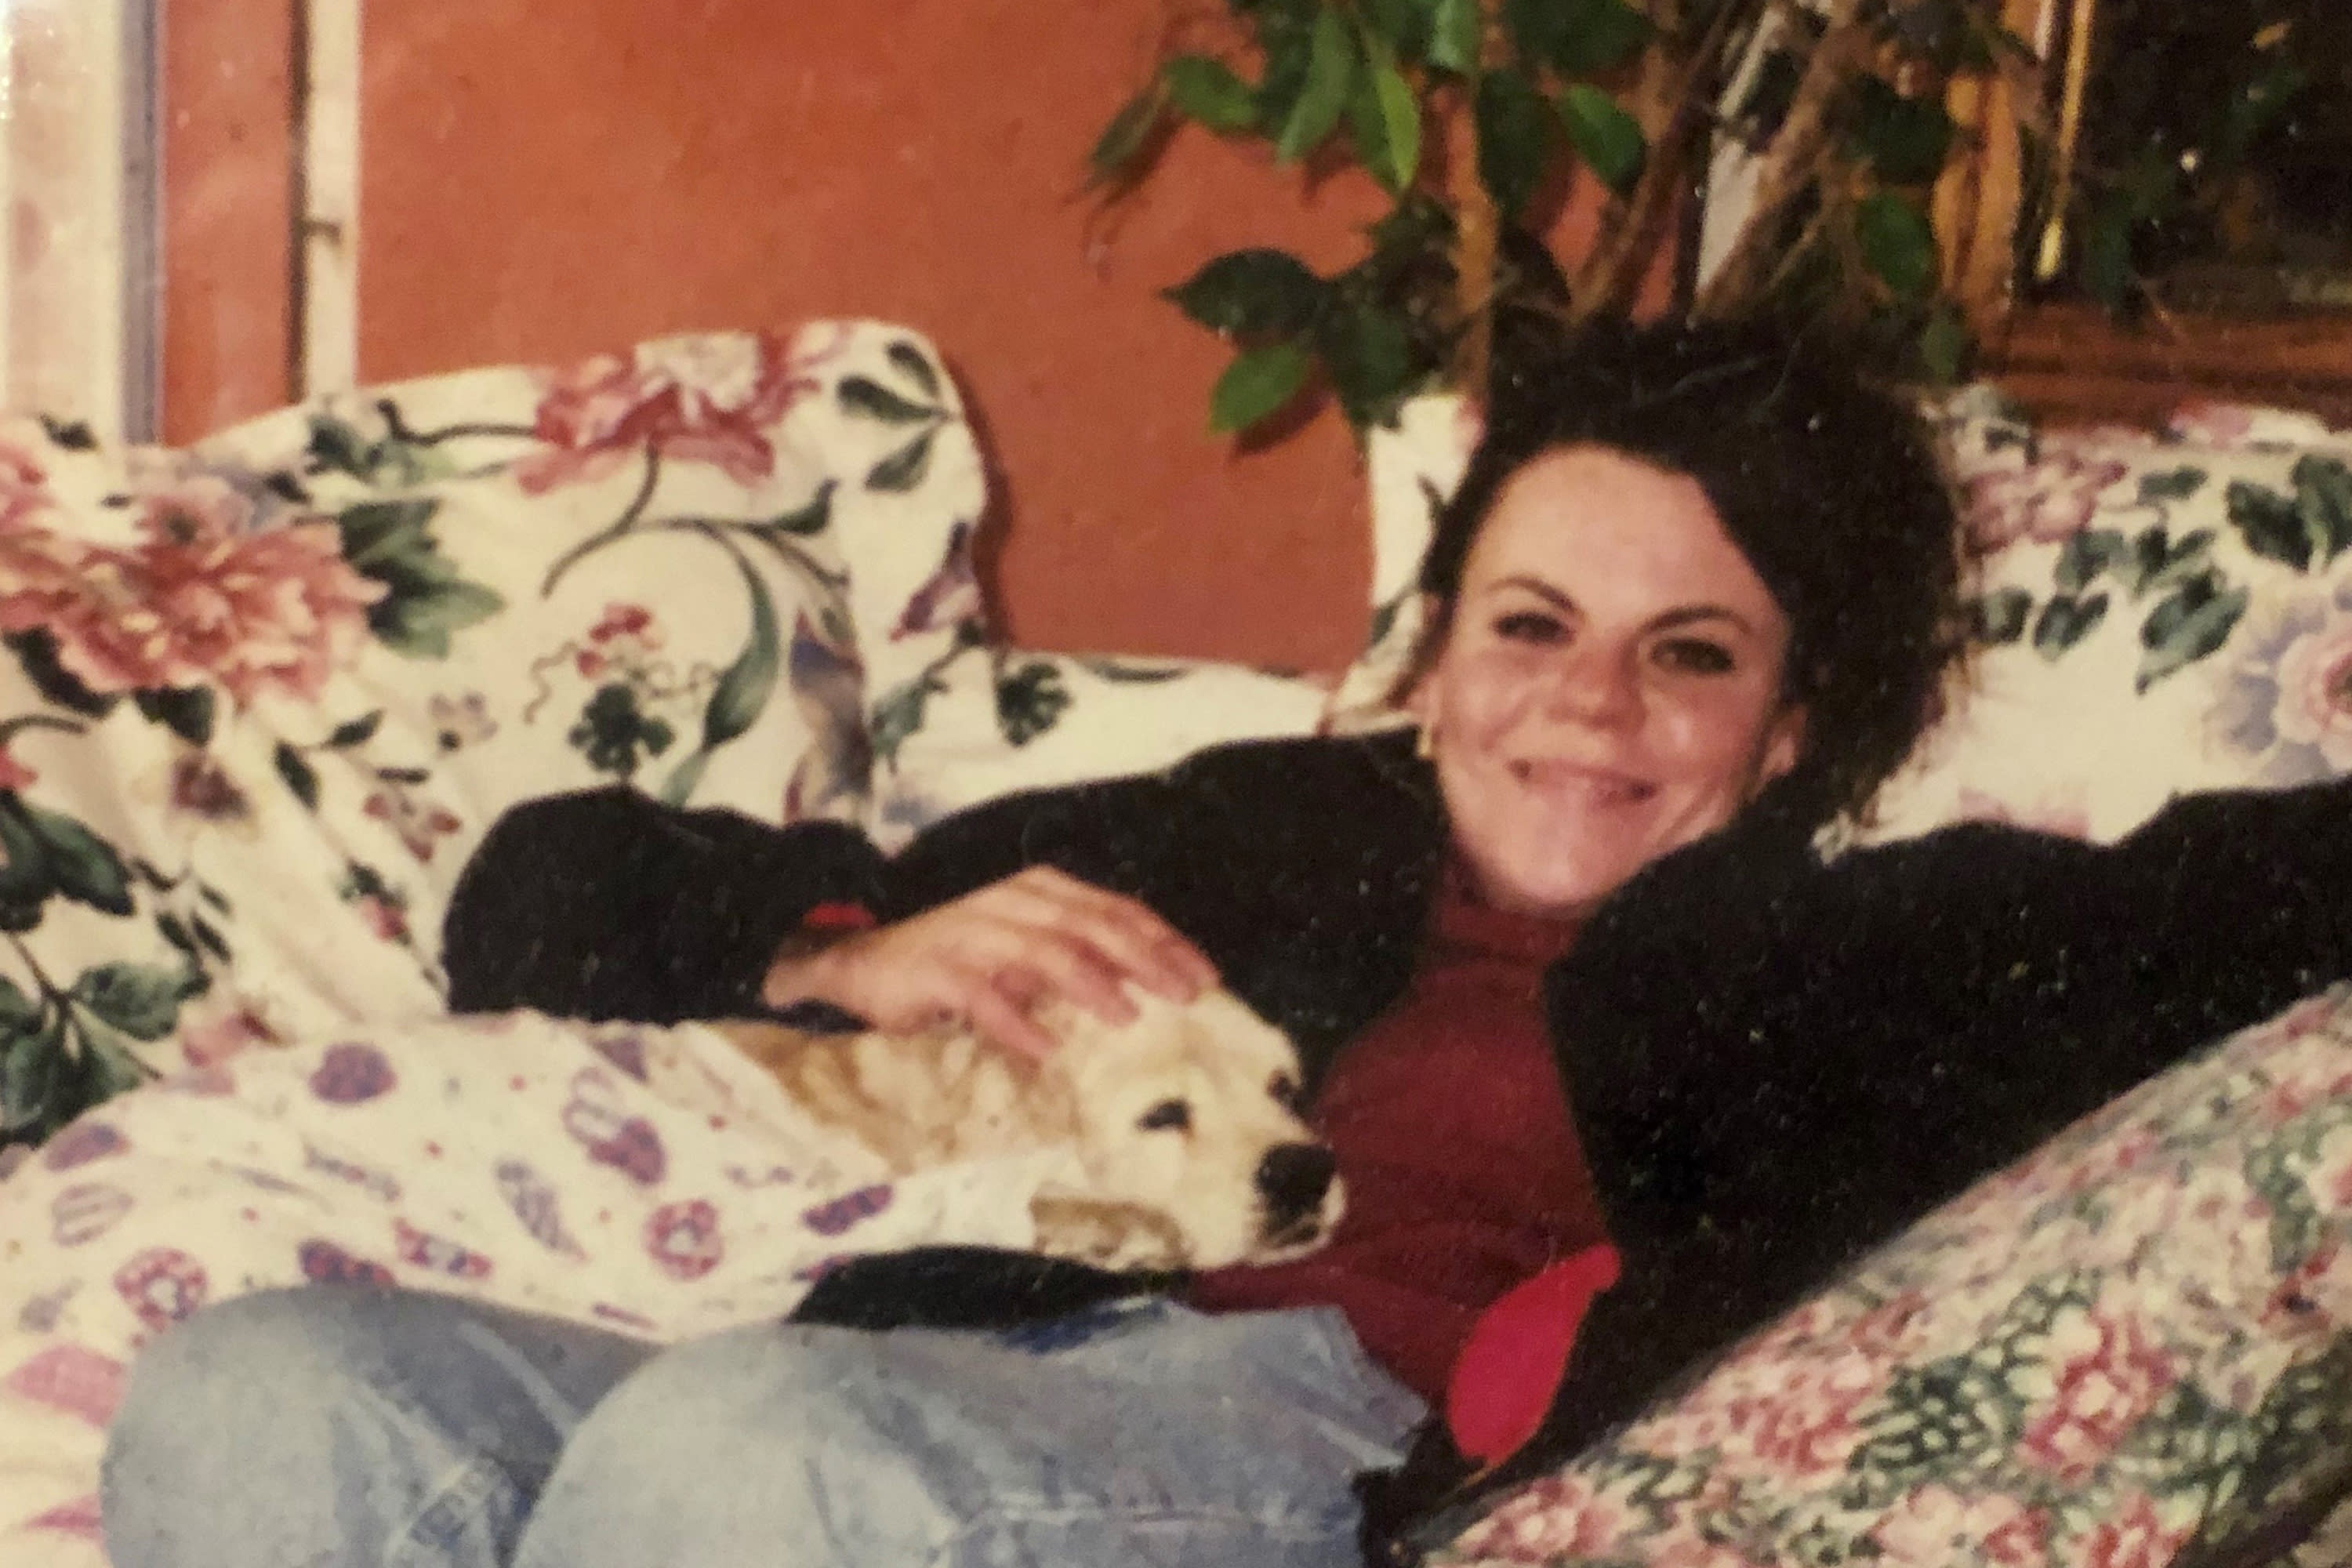 This photo provided by Lana Rivera from 1999, shows Melanie Billhartz at her mother's house in El Paso Texas. Authorities say Billhartz was strangled more than 17 years ago by Texas death row inmate Justen Hall. Hall is set to be executed Wednesday evening, Nov. 6, 2019, for Billhartz's death in October 2002. (Photo courtesy of Lana Rivera via AP)